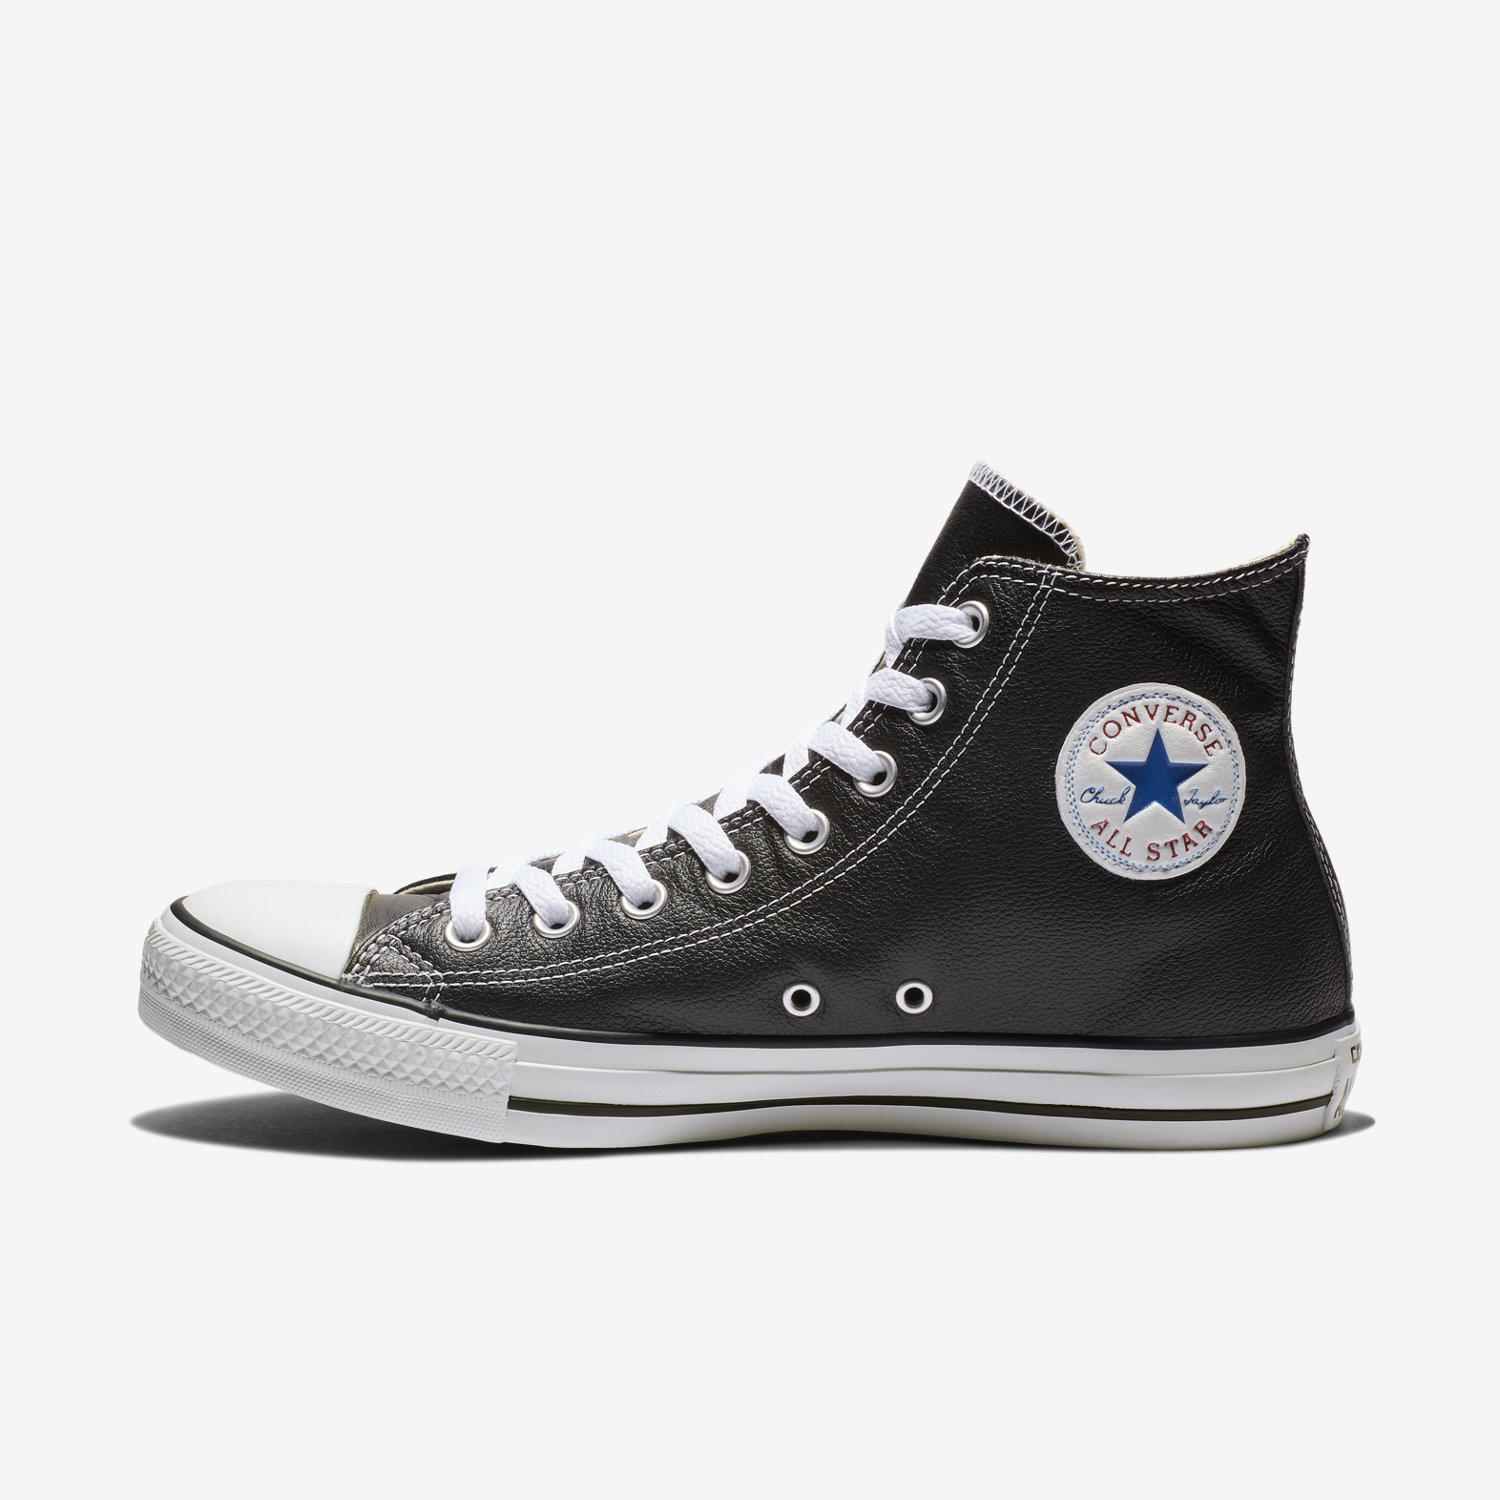 Sneakers Converse All Star Hi Leather